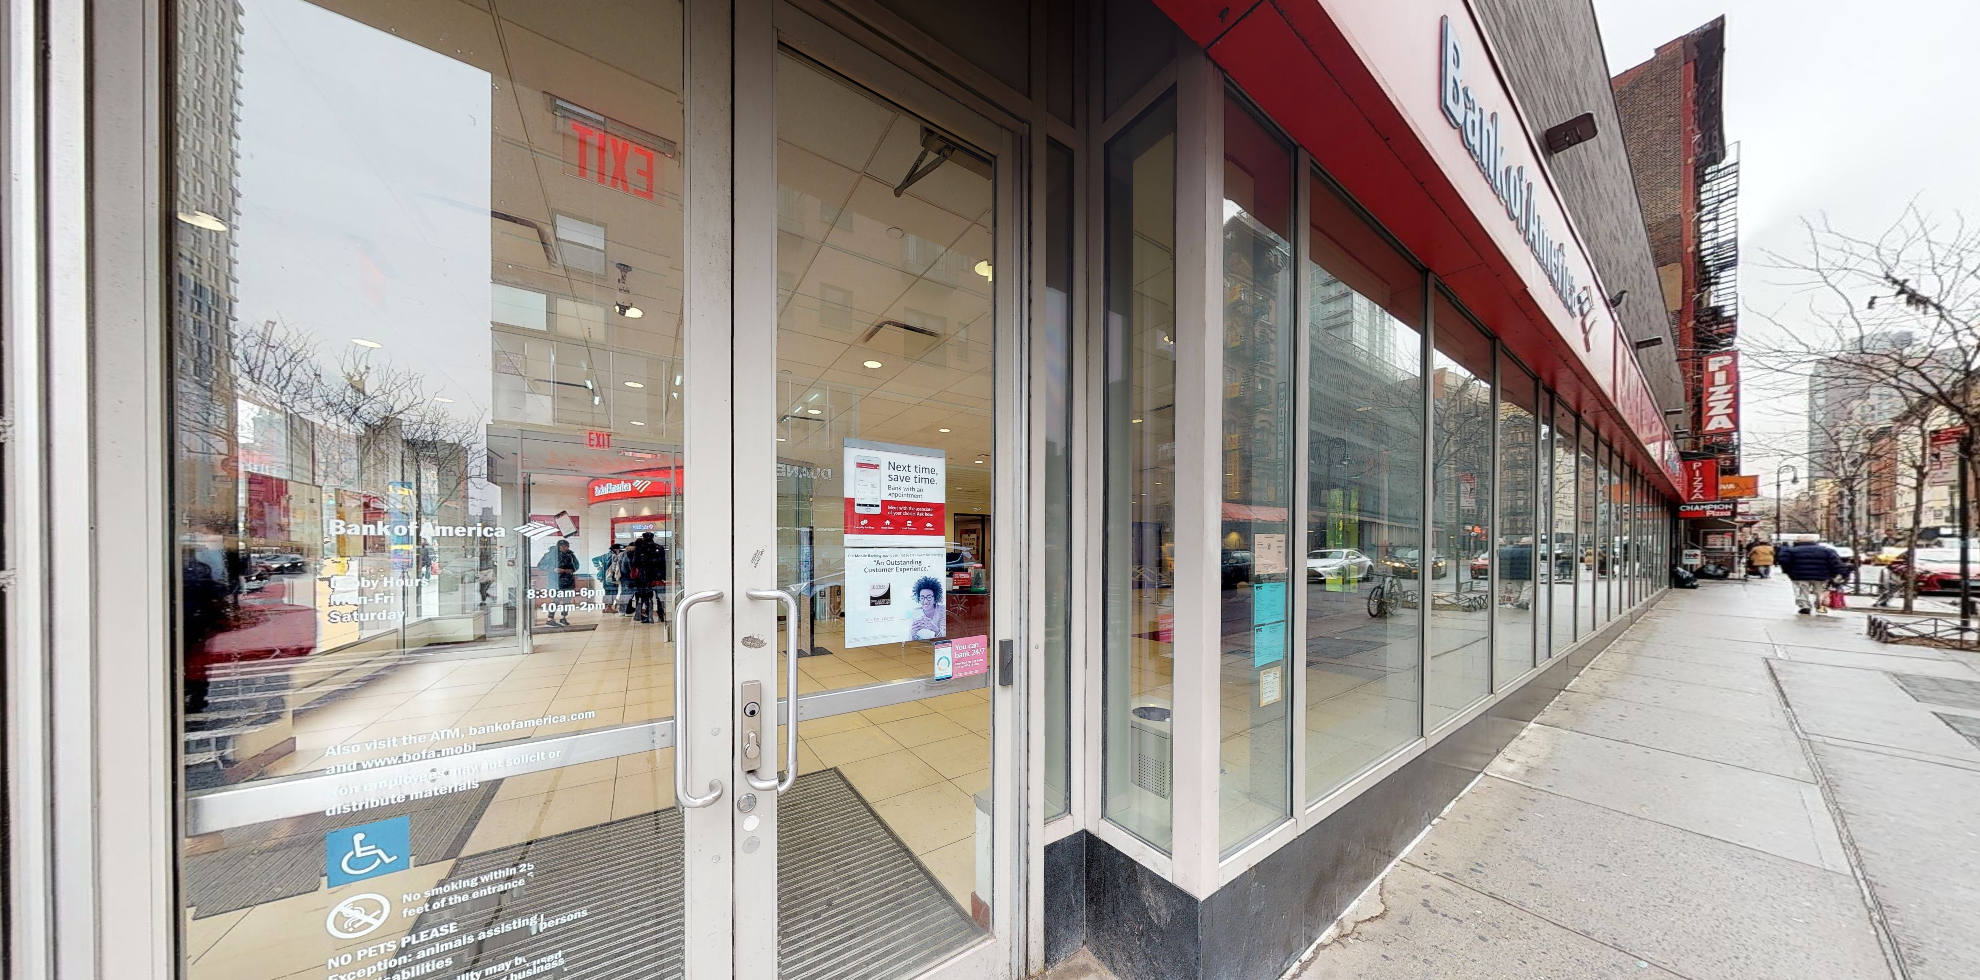 Bank of America financial center with walk-up ATM | 92 Delancey St, New York, NY 10002